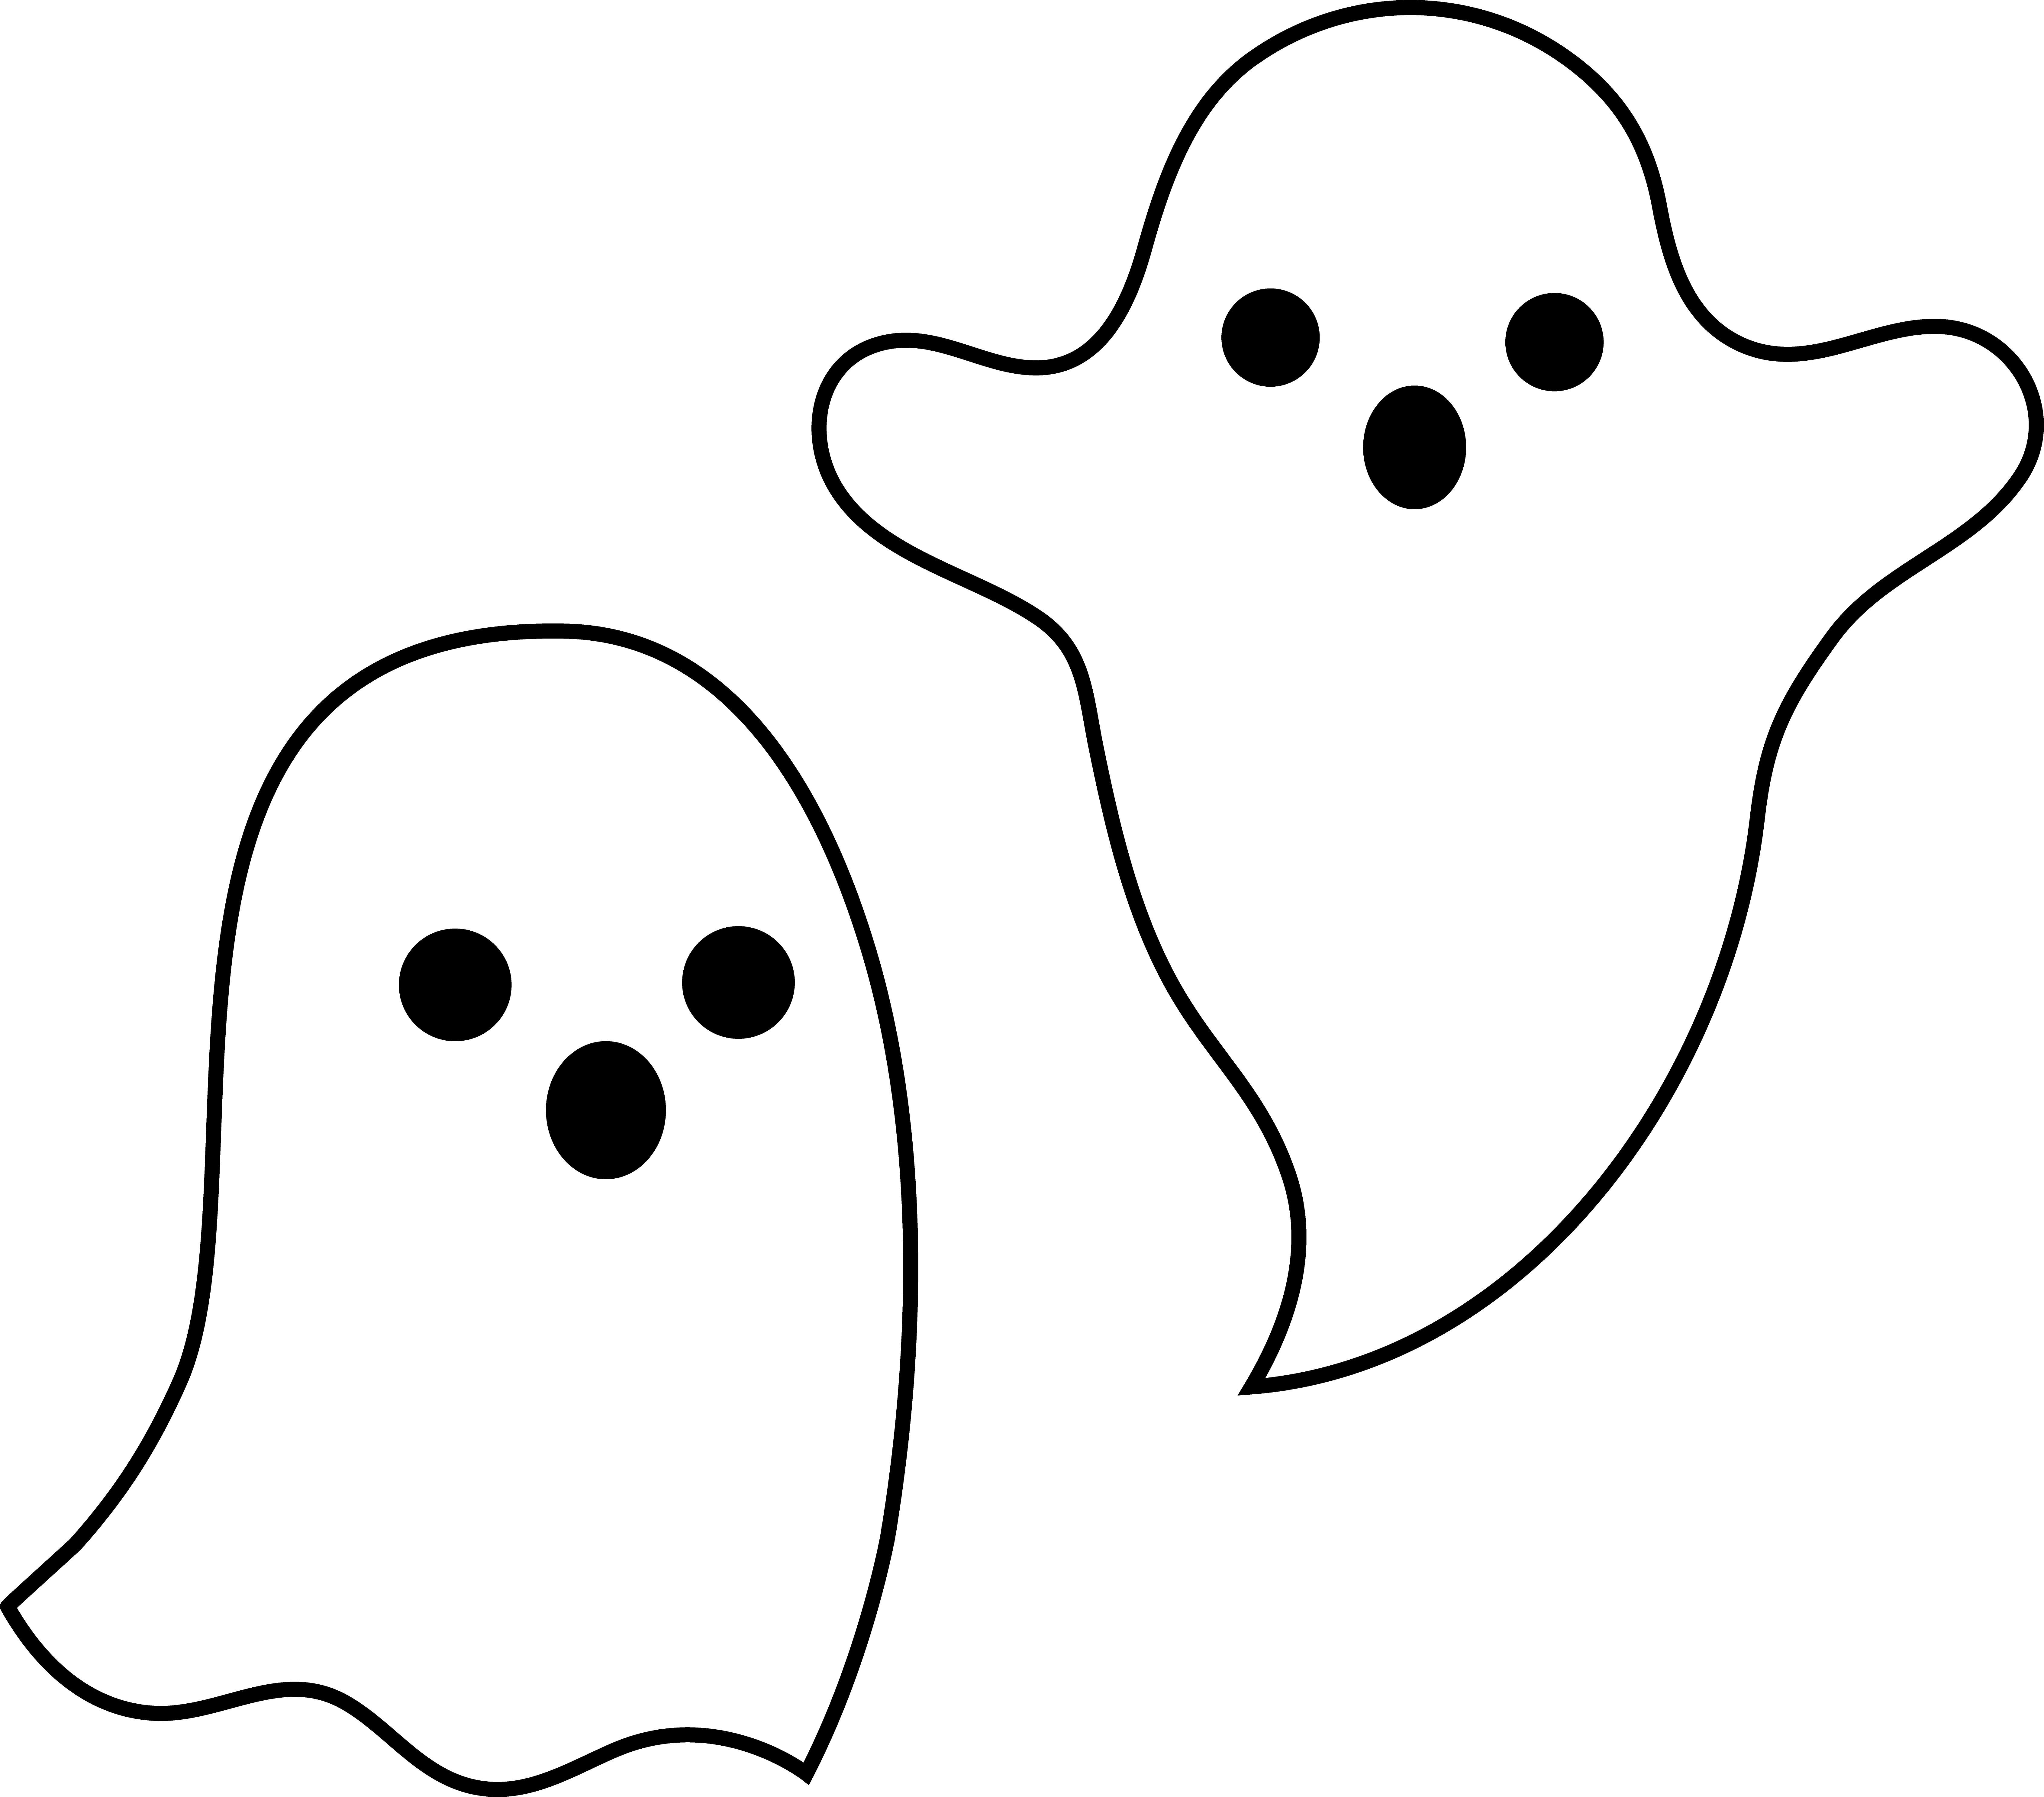 Bat clipart ghost. Ghosts lessons tes teach